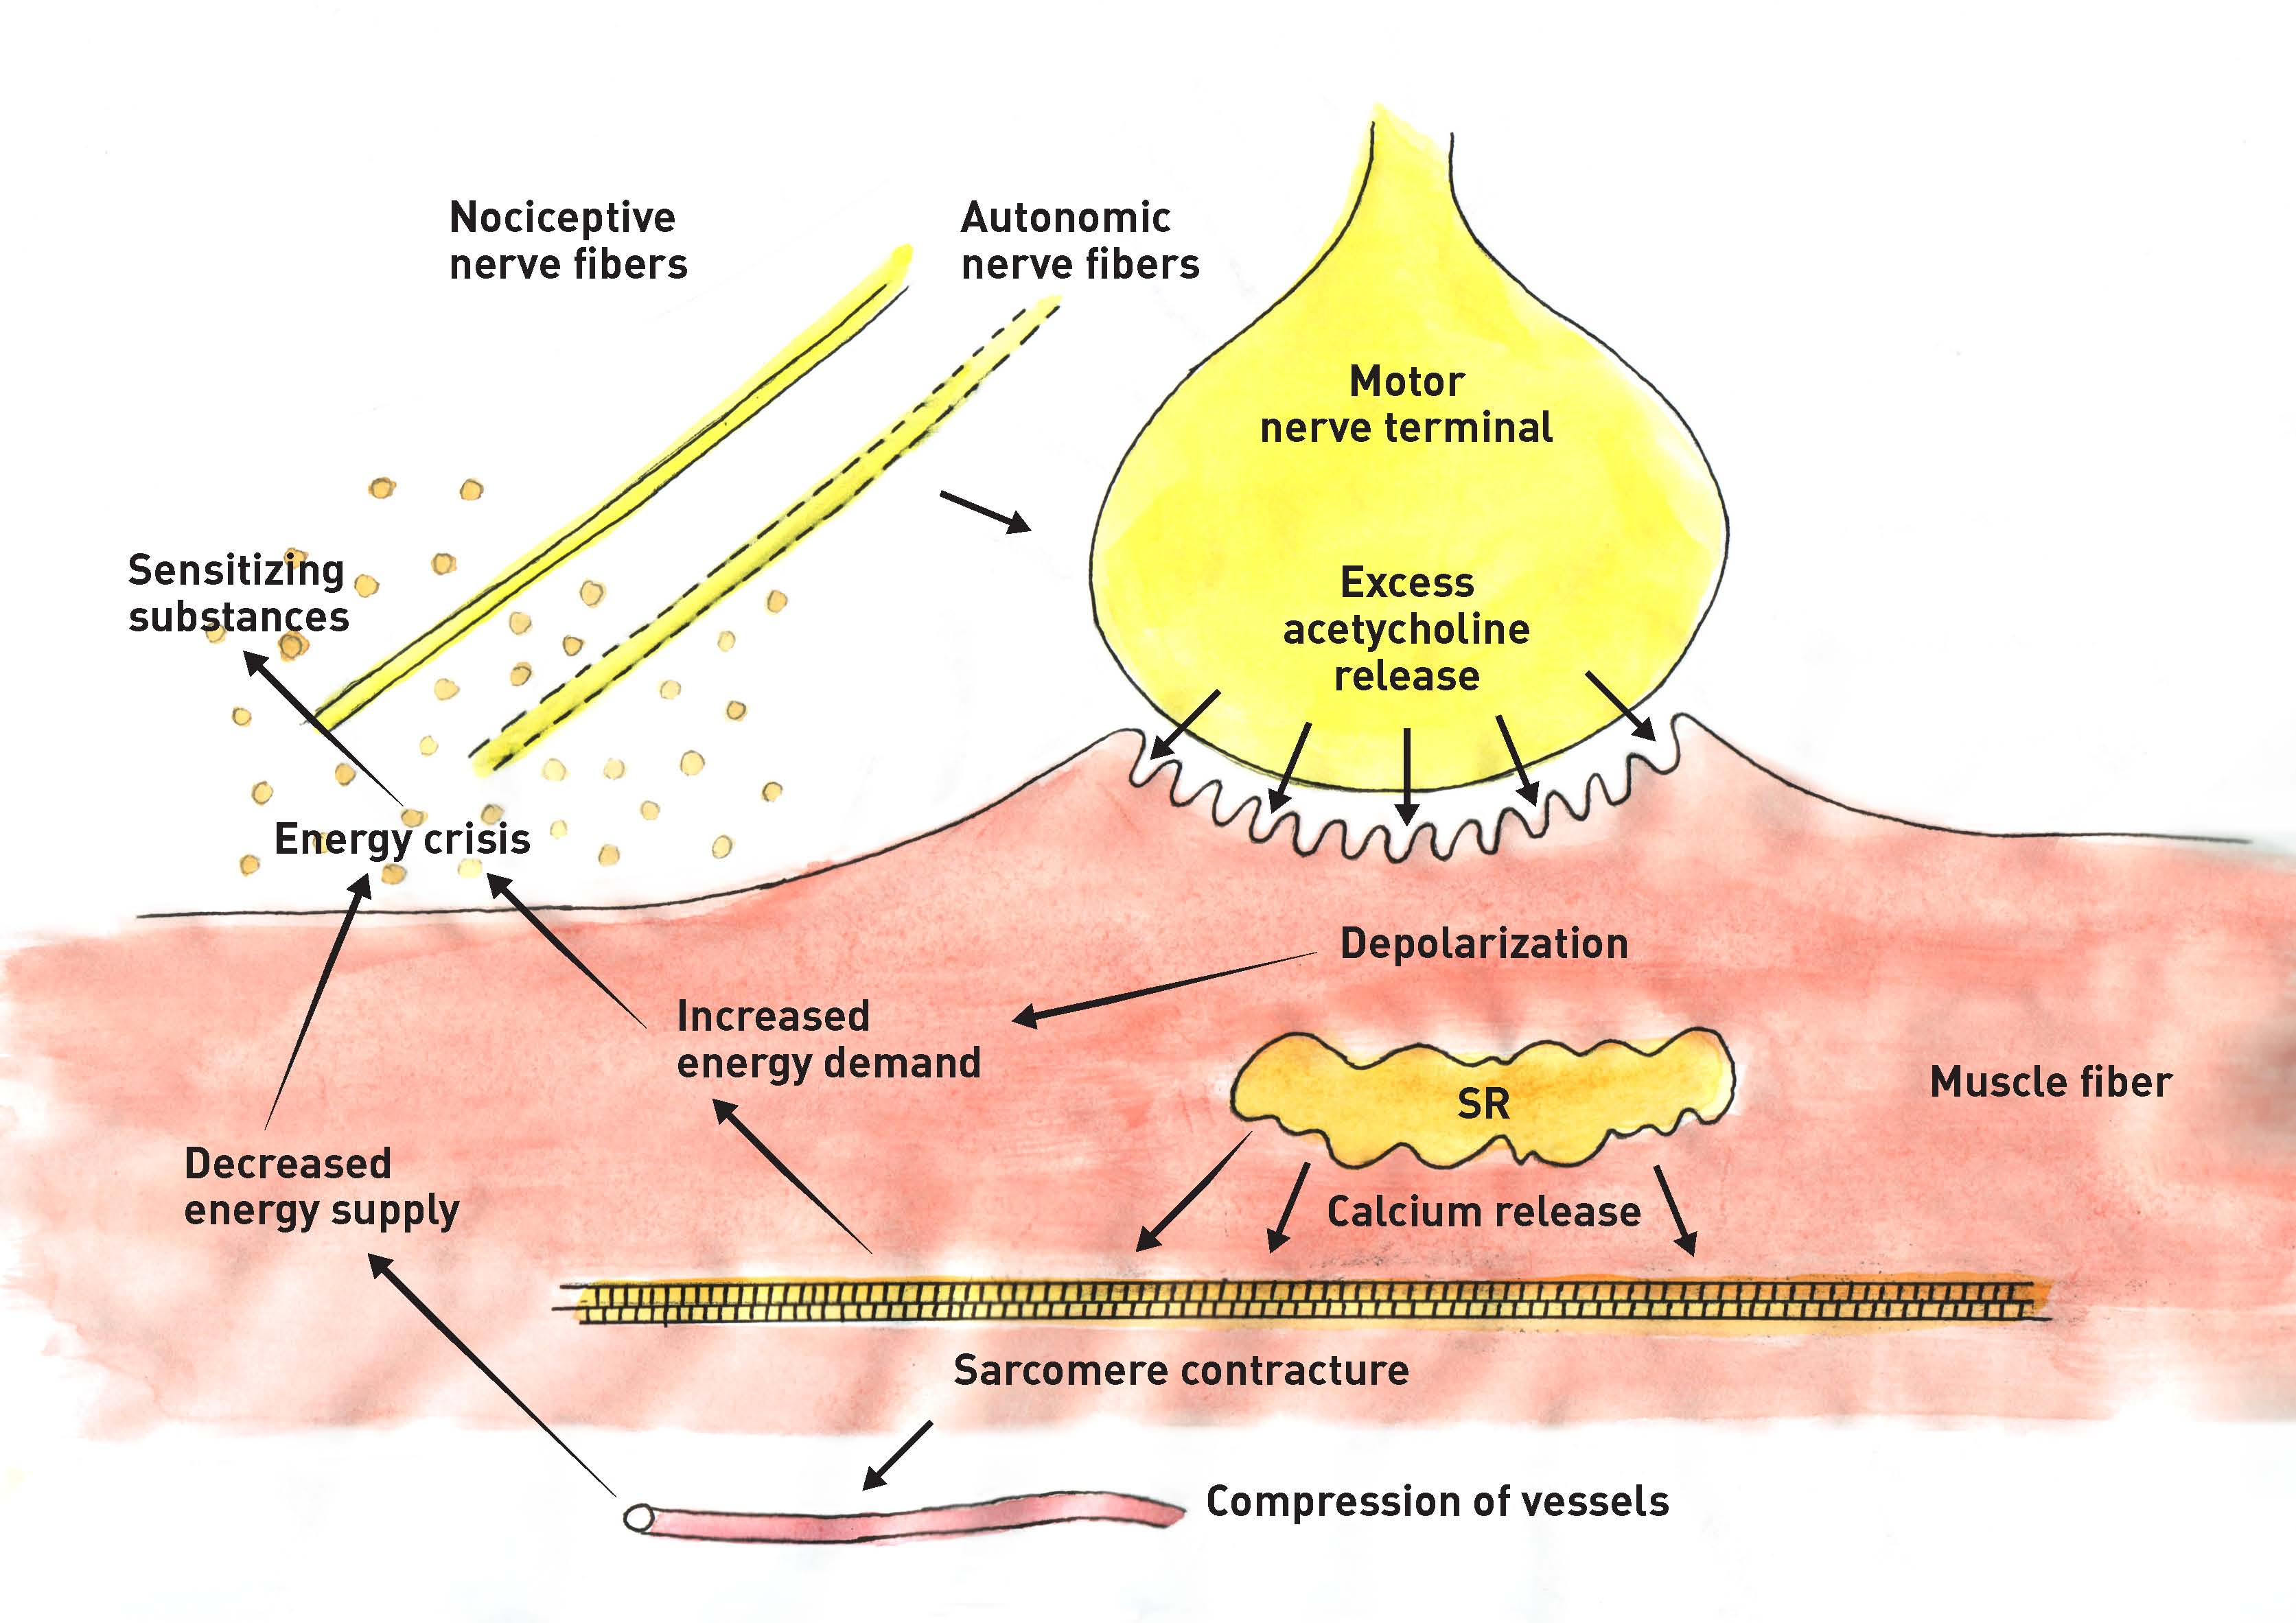 "The ""Energy Crisis Theory"" for Myofascial Trigger Points: An injury to the sarcoplasmatic reticulum leads to an unregulated release of calcium ions within the muscle fibers. As a result, these ions constantly contract and compress the small blood vessels within them. This comprimises the circulation and oxygen supply to the muscle fibers. The lack of oxygen and the increasing metabolic demand of the muscle cell is referred to as the energy crisis. This can lead to local inflammation and pain as well as to further contraction of the muscle fibers and the formation of myofascial trigger points."